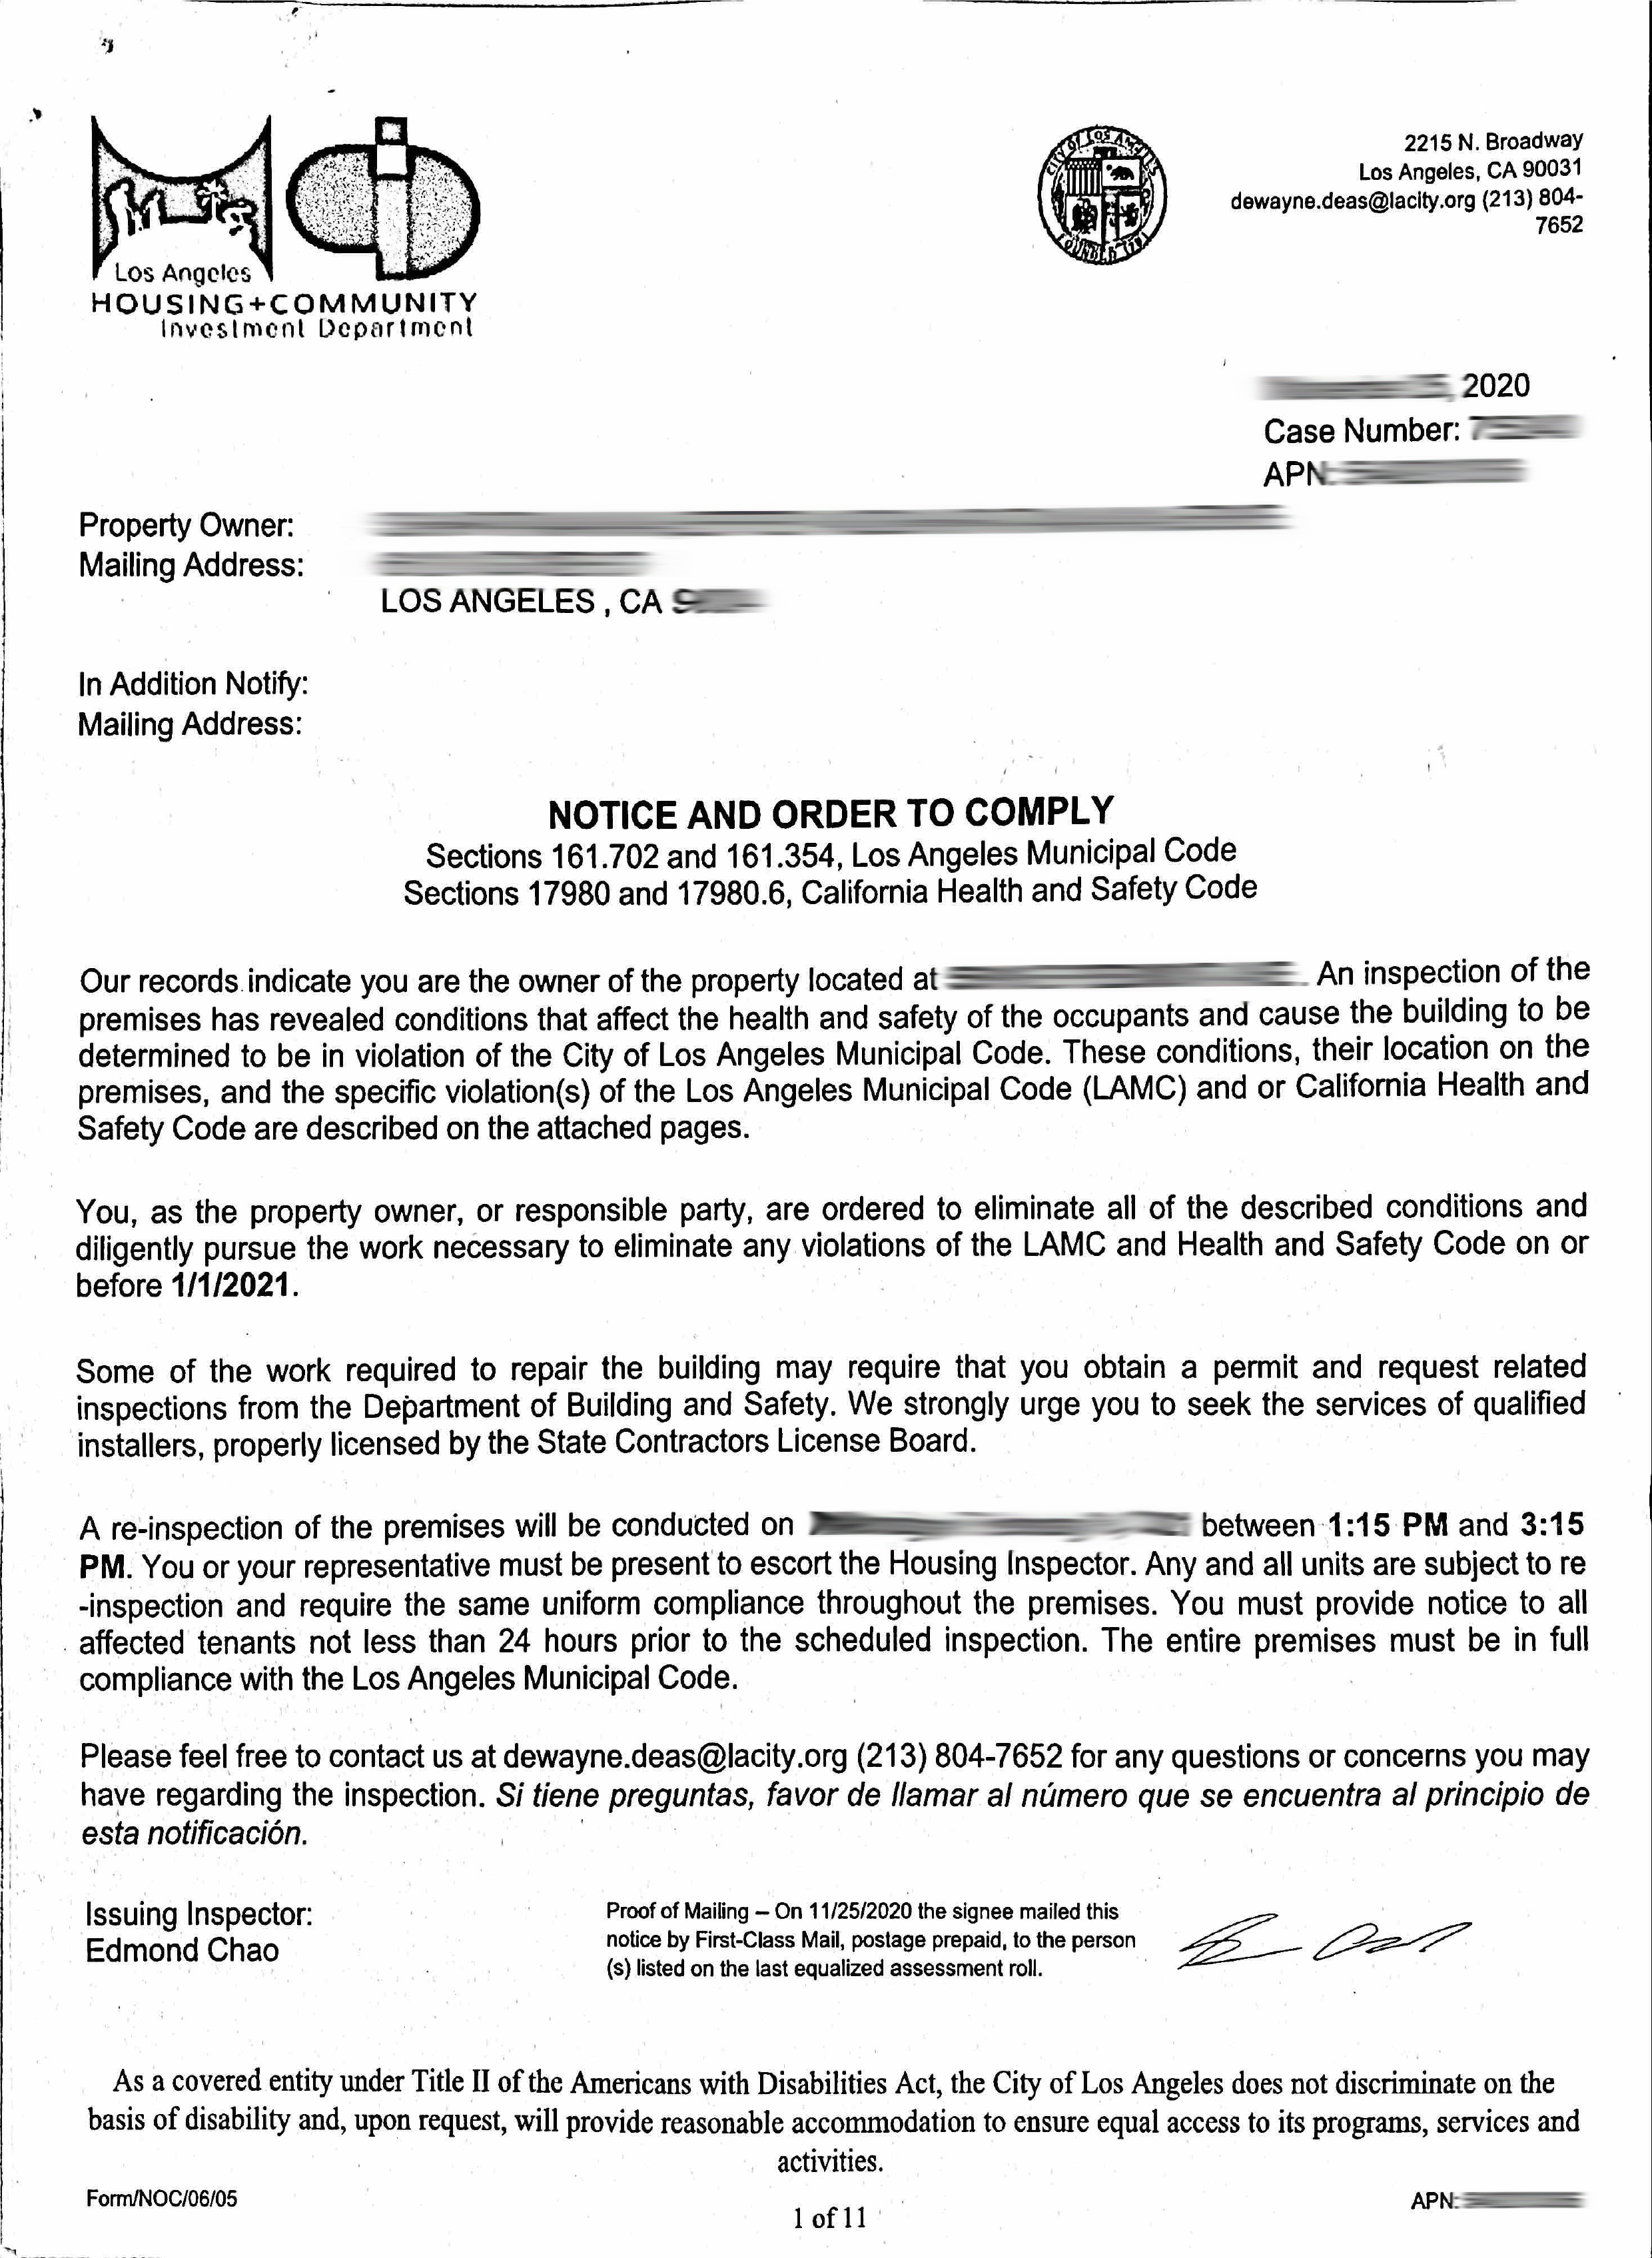 Notice and Order to Comply